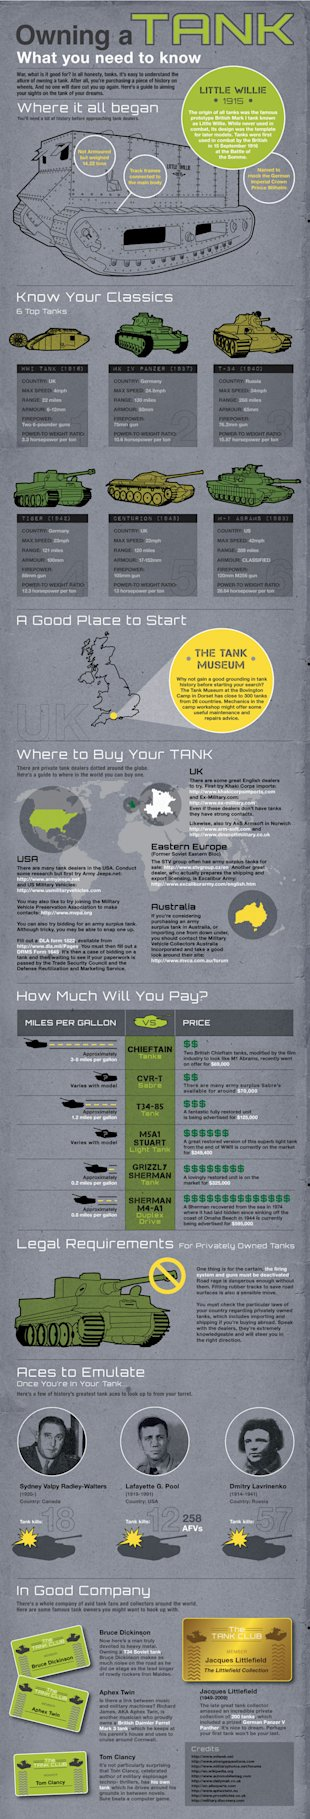 The Ins & Outs of Owning a Tank Infographic image owningatankver2 opt